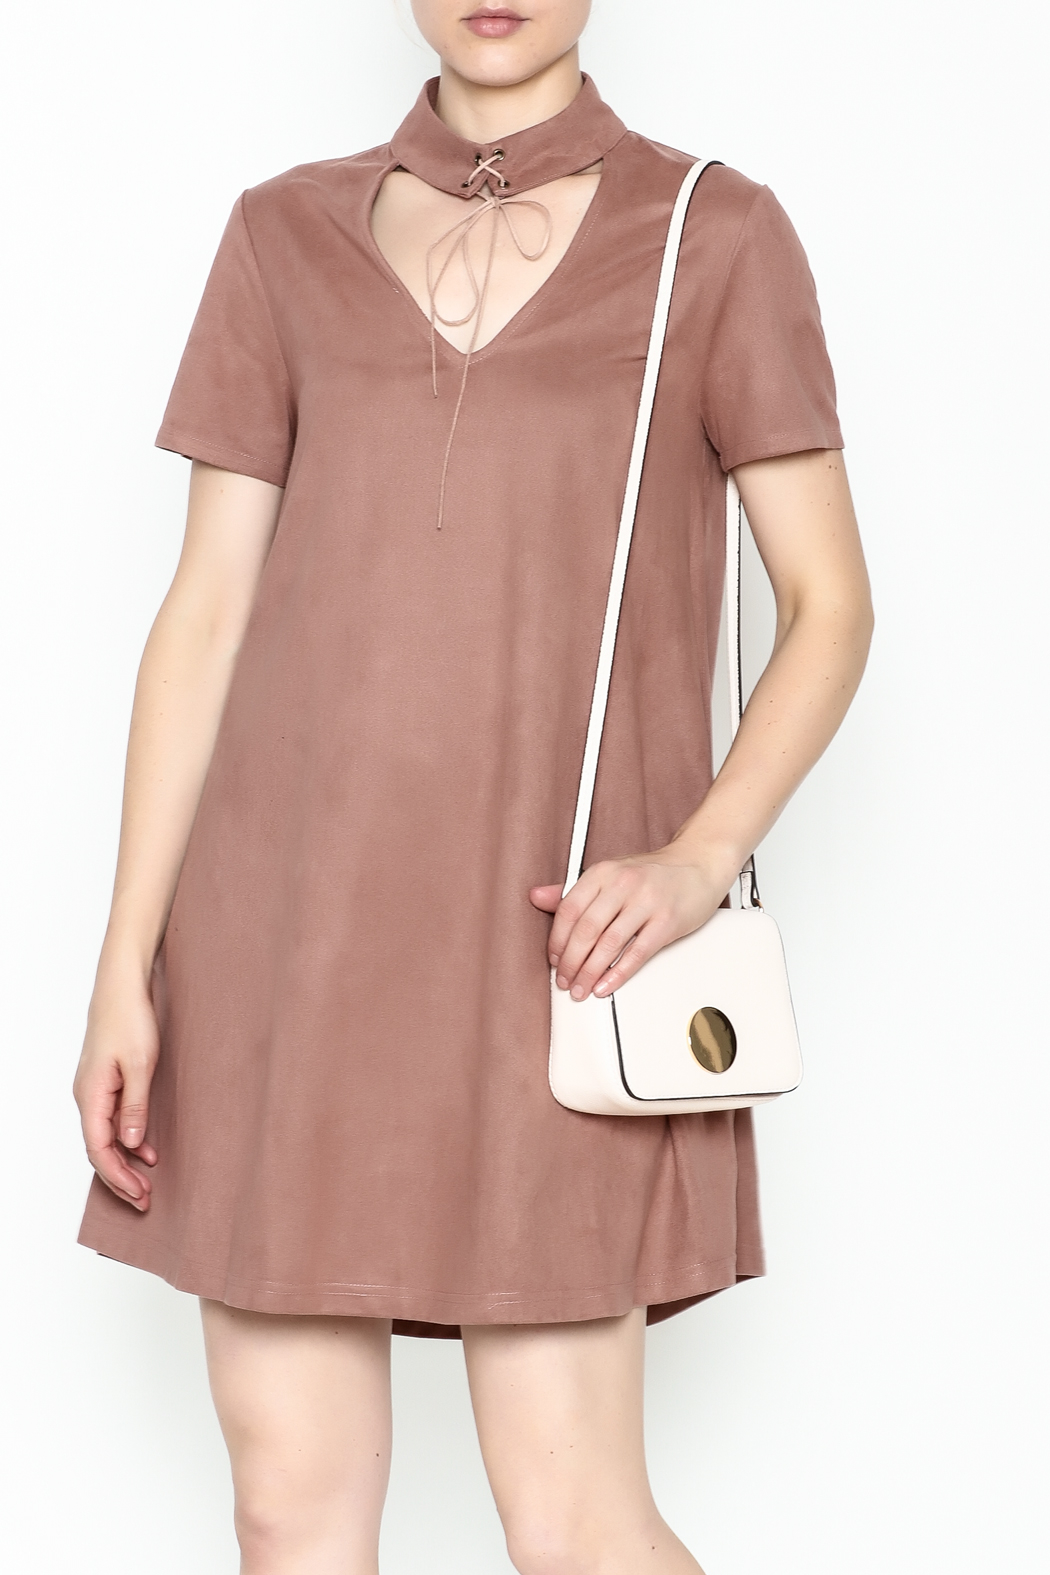 LoveRiche Suede Choker Dress - Main Image